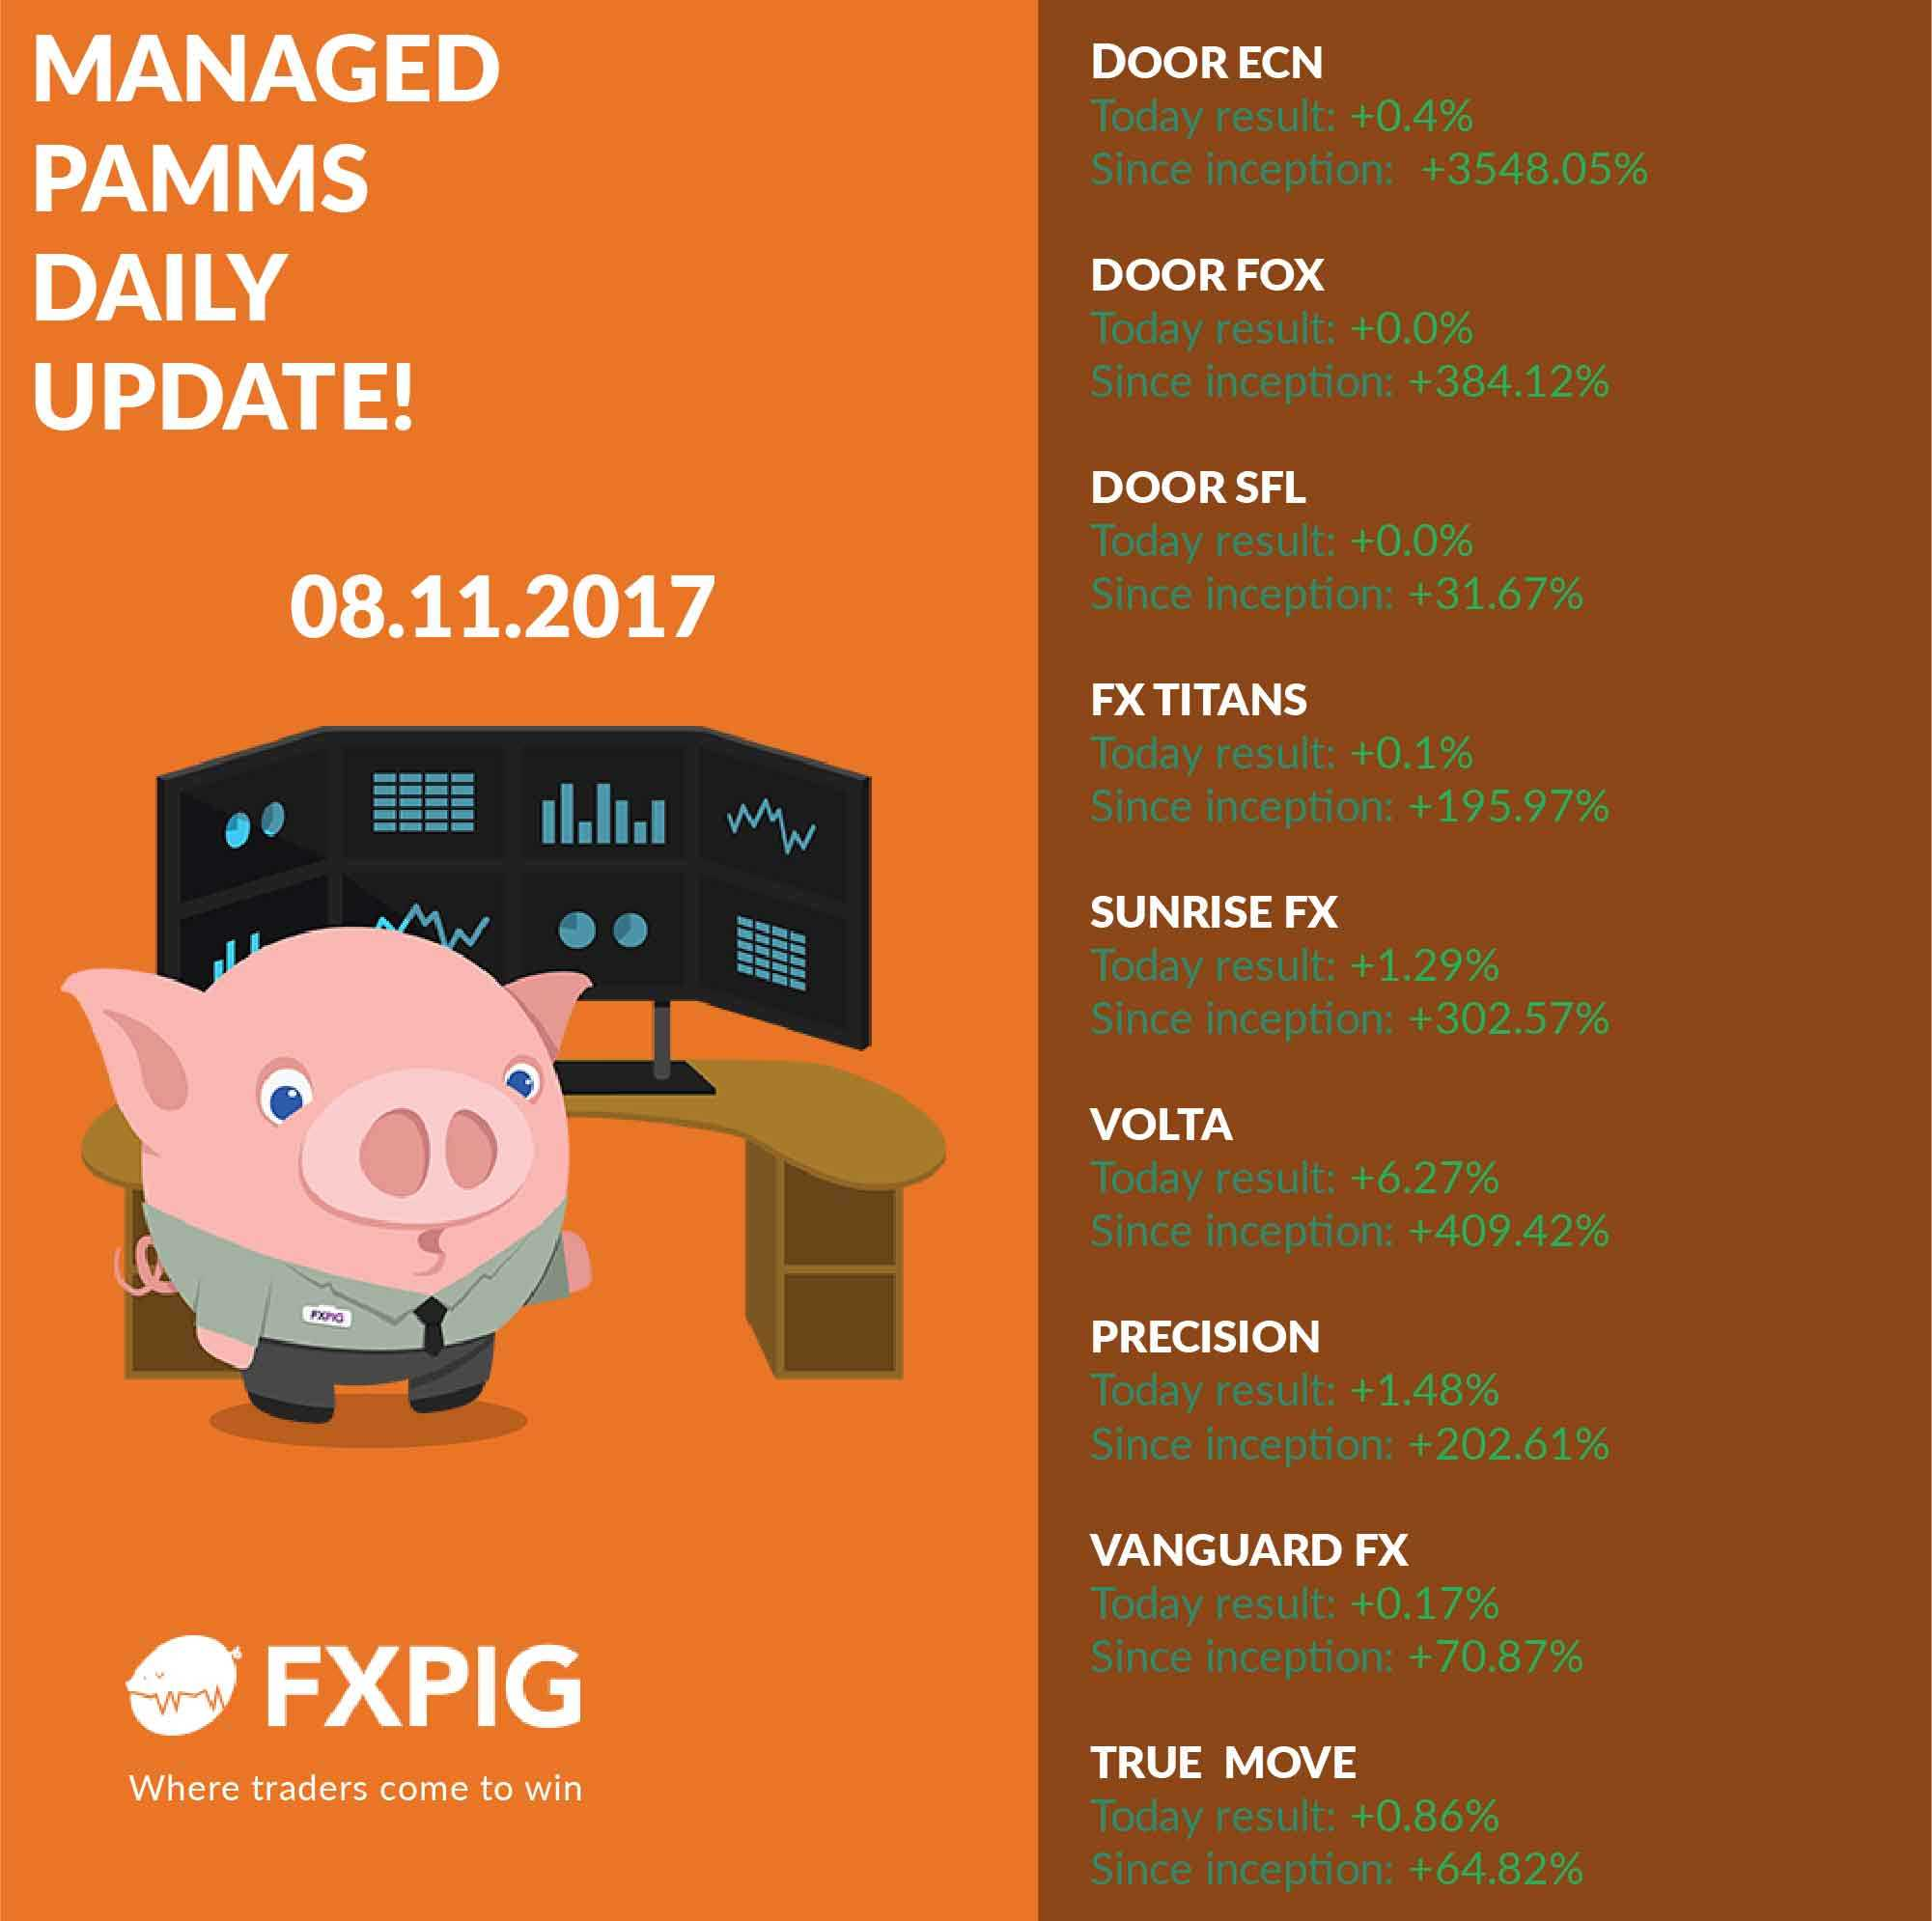 Pamm-daily-update_8-11-2017_FXPIG